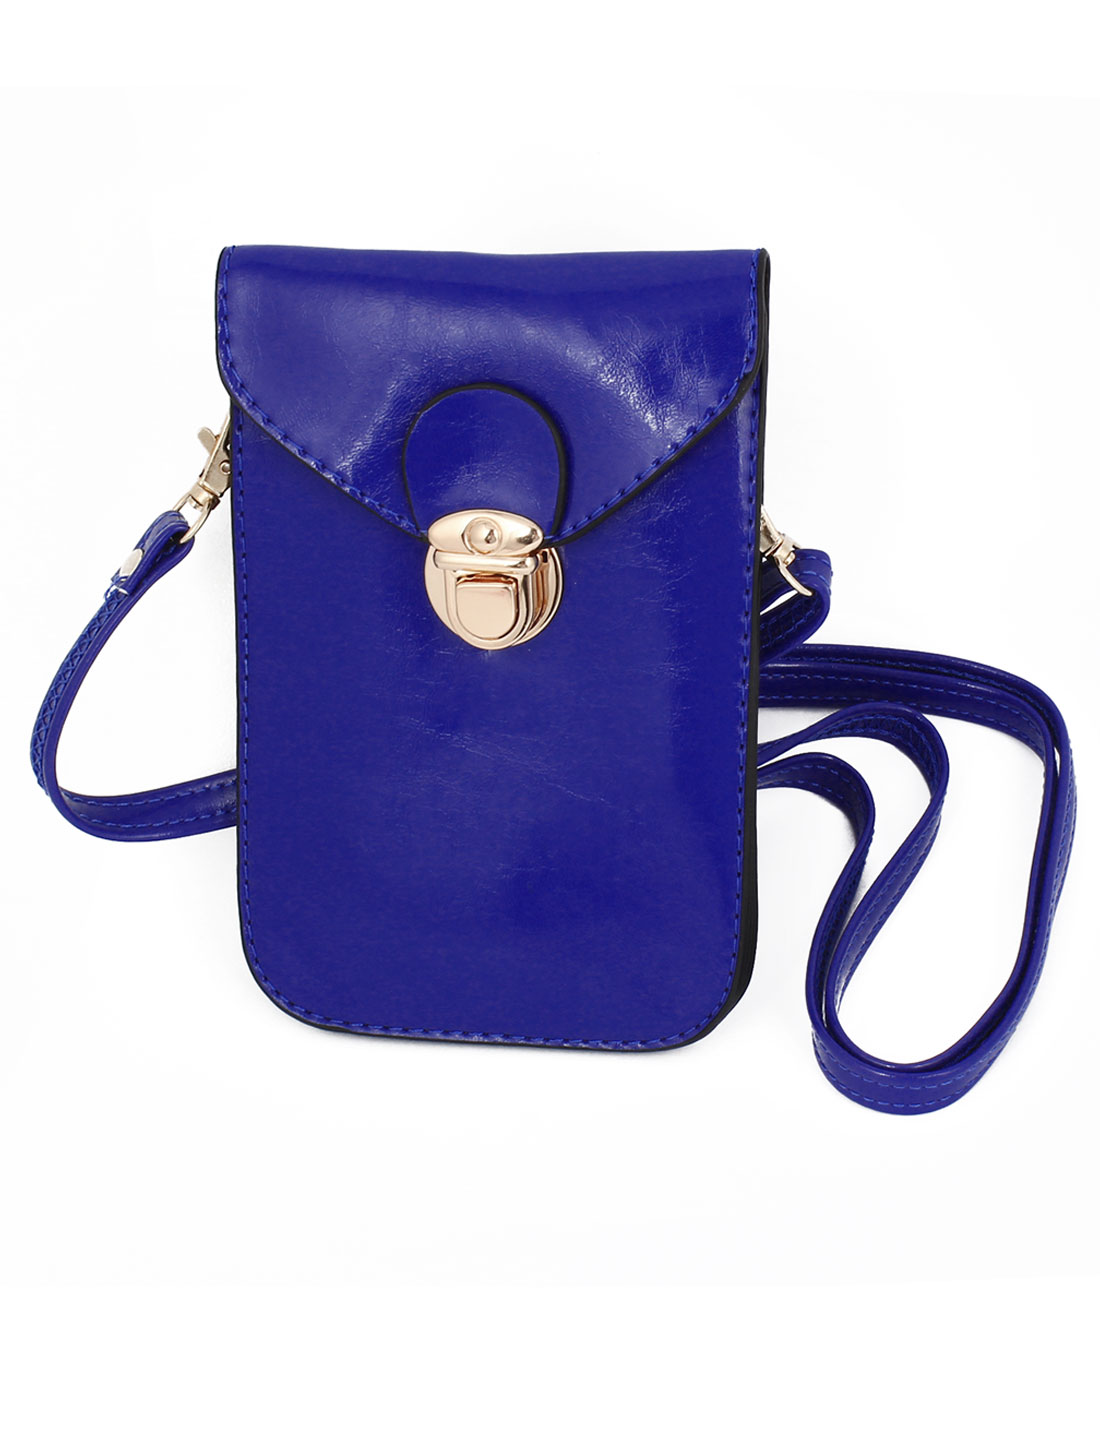 Ladies Faux Leather 2 Compartments Push Lock Closure Cross-Body Bag Purse Blue